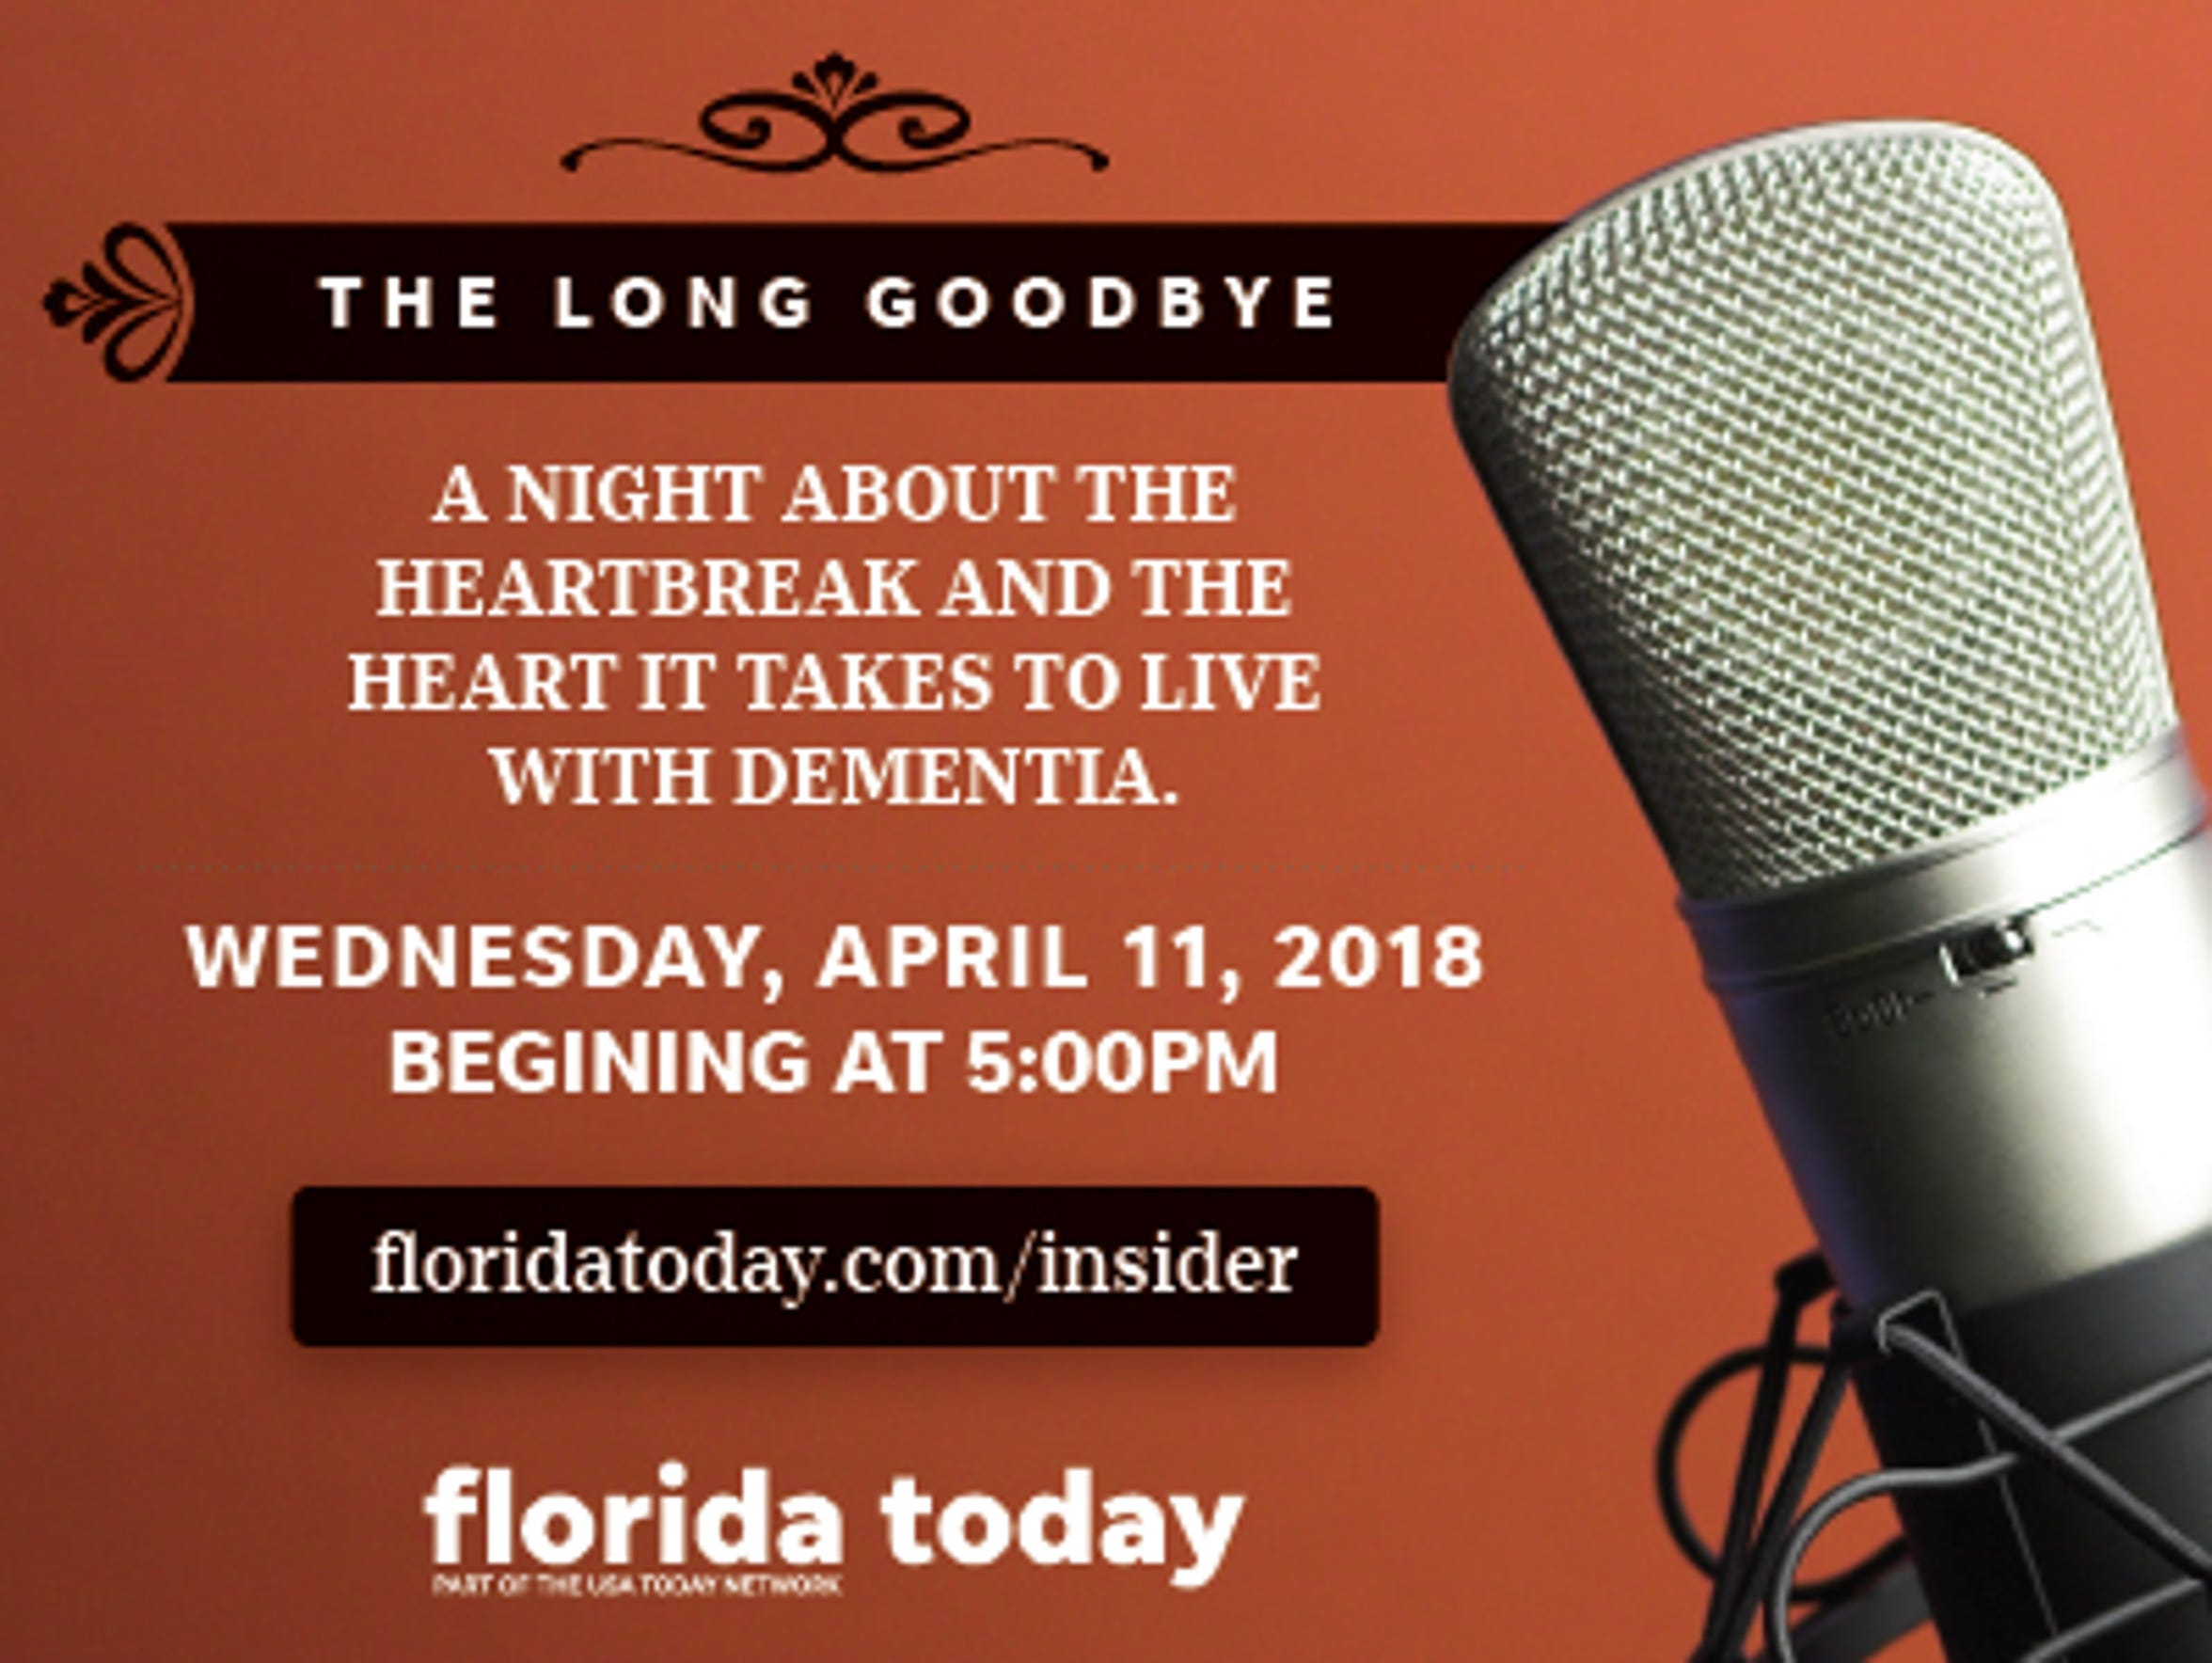 Join FLORIDA TODAY's Britt Kennerly at an exclusive event to discuss The Long Goodbye. Visit floridatoday.com/insider to register.